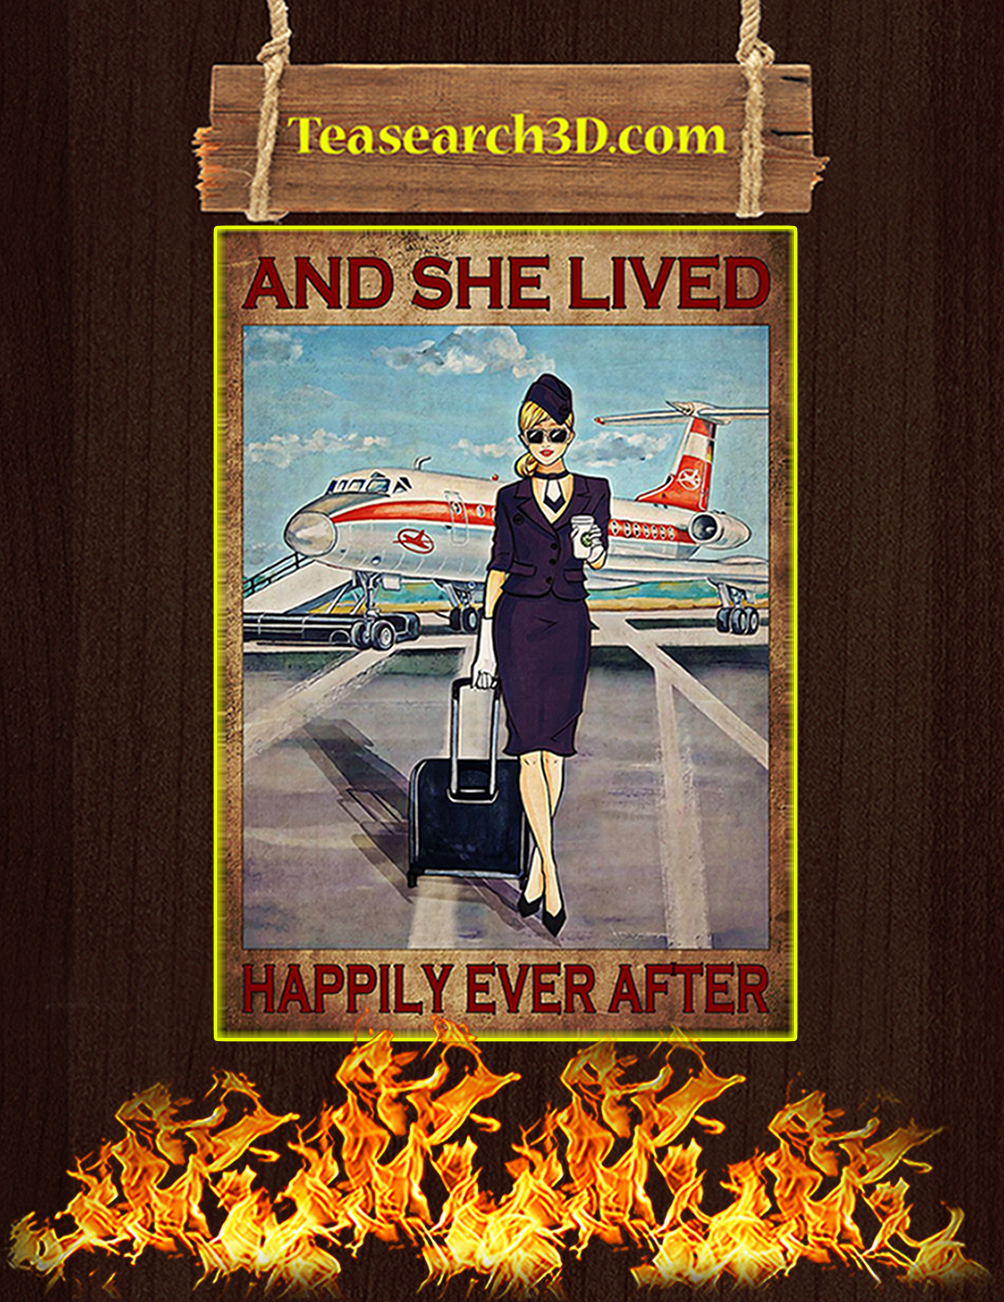 Flight attendant and she lived happily ever after black poster